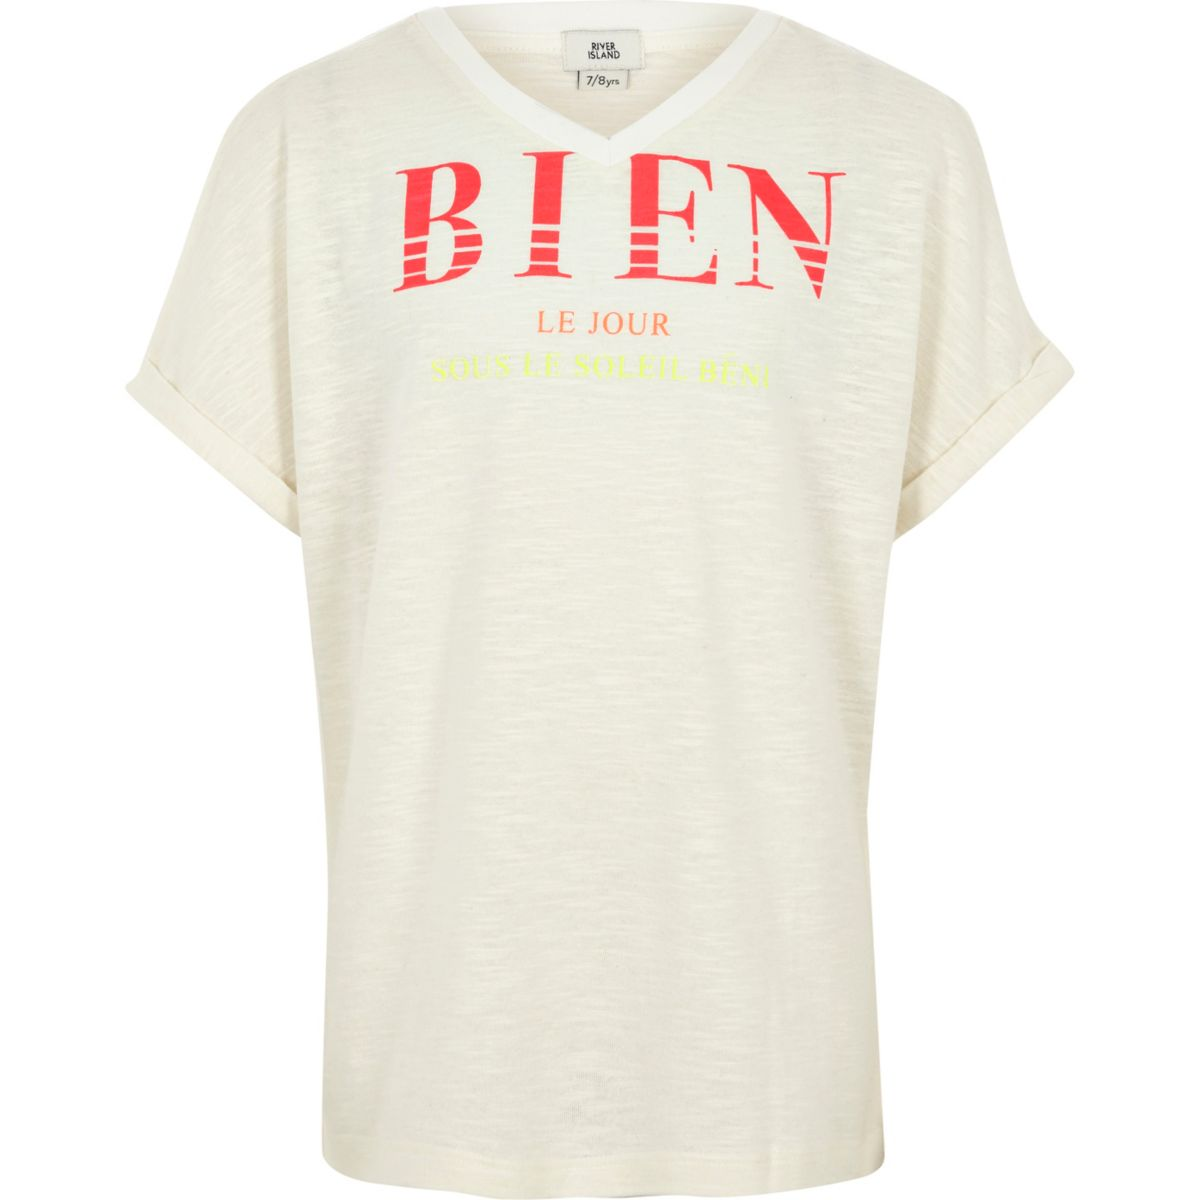 "T-Shirt in Creme ""bien"""